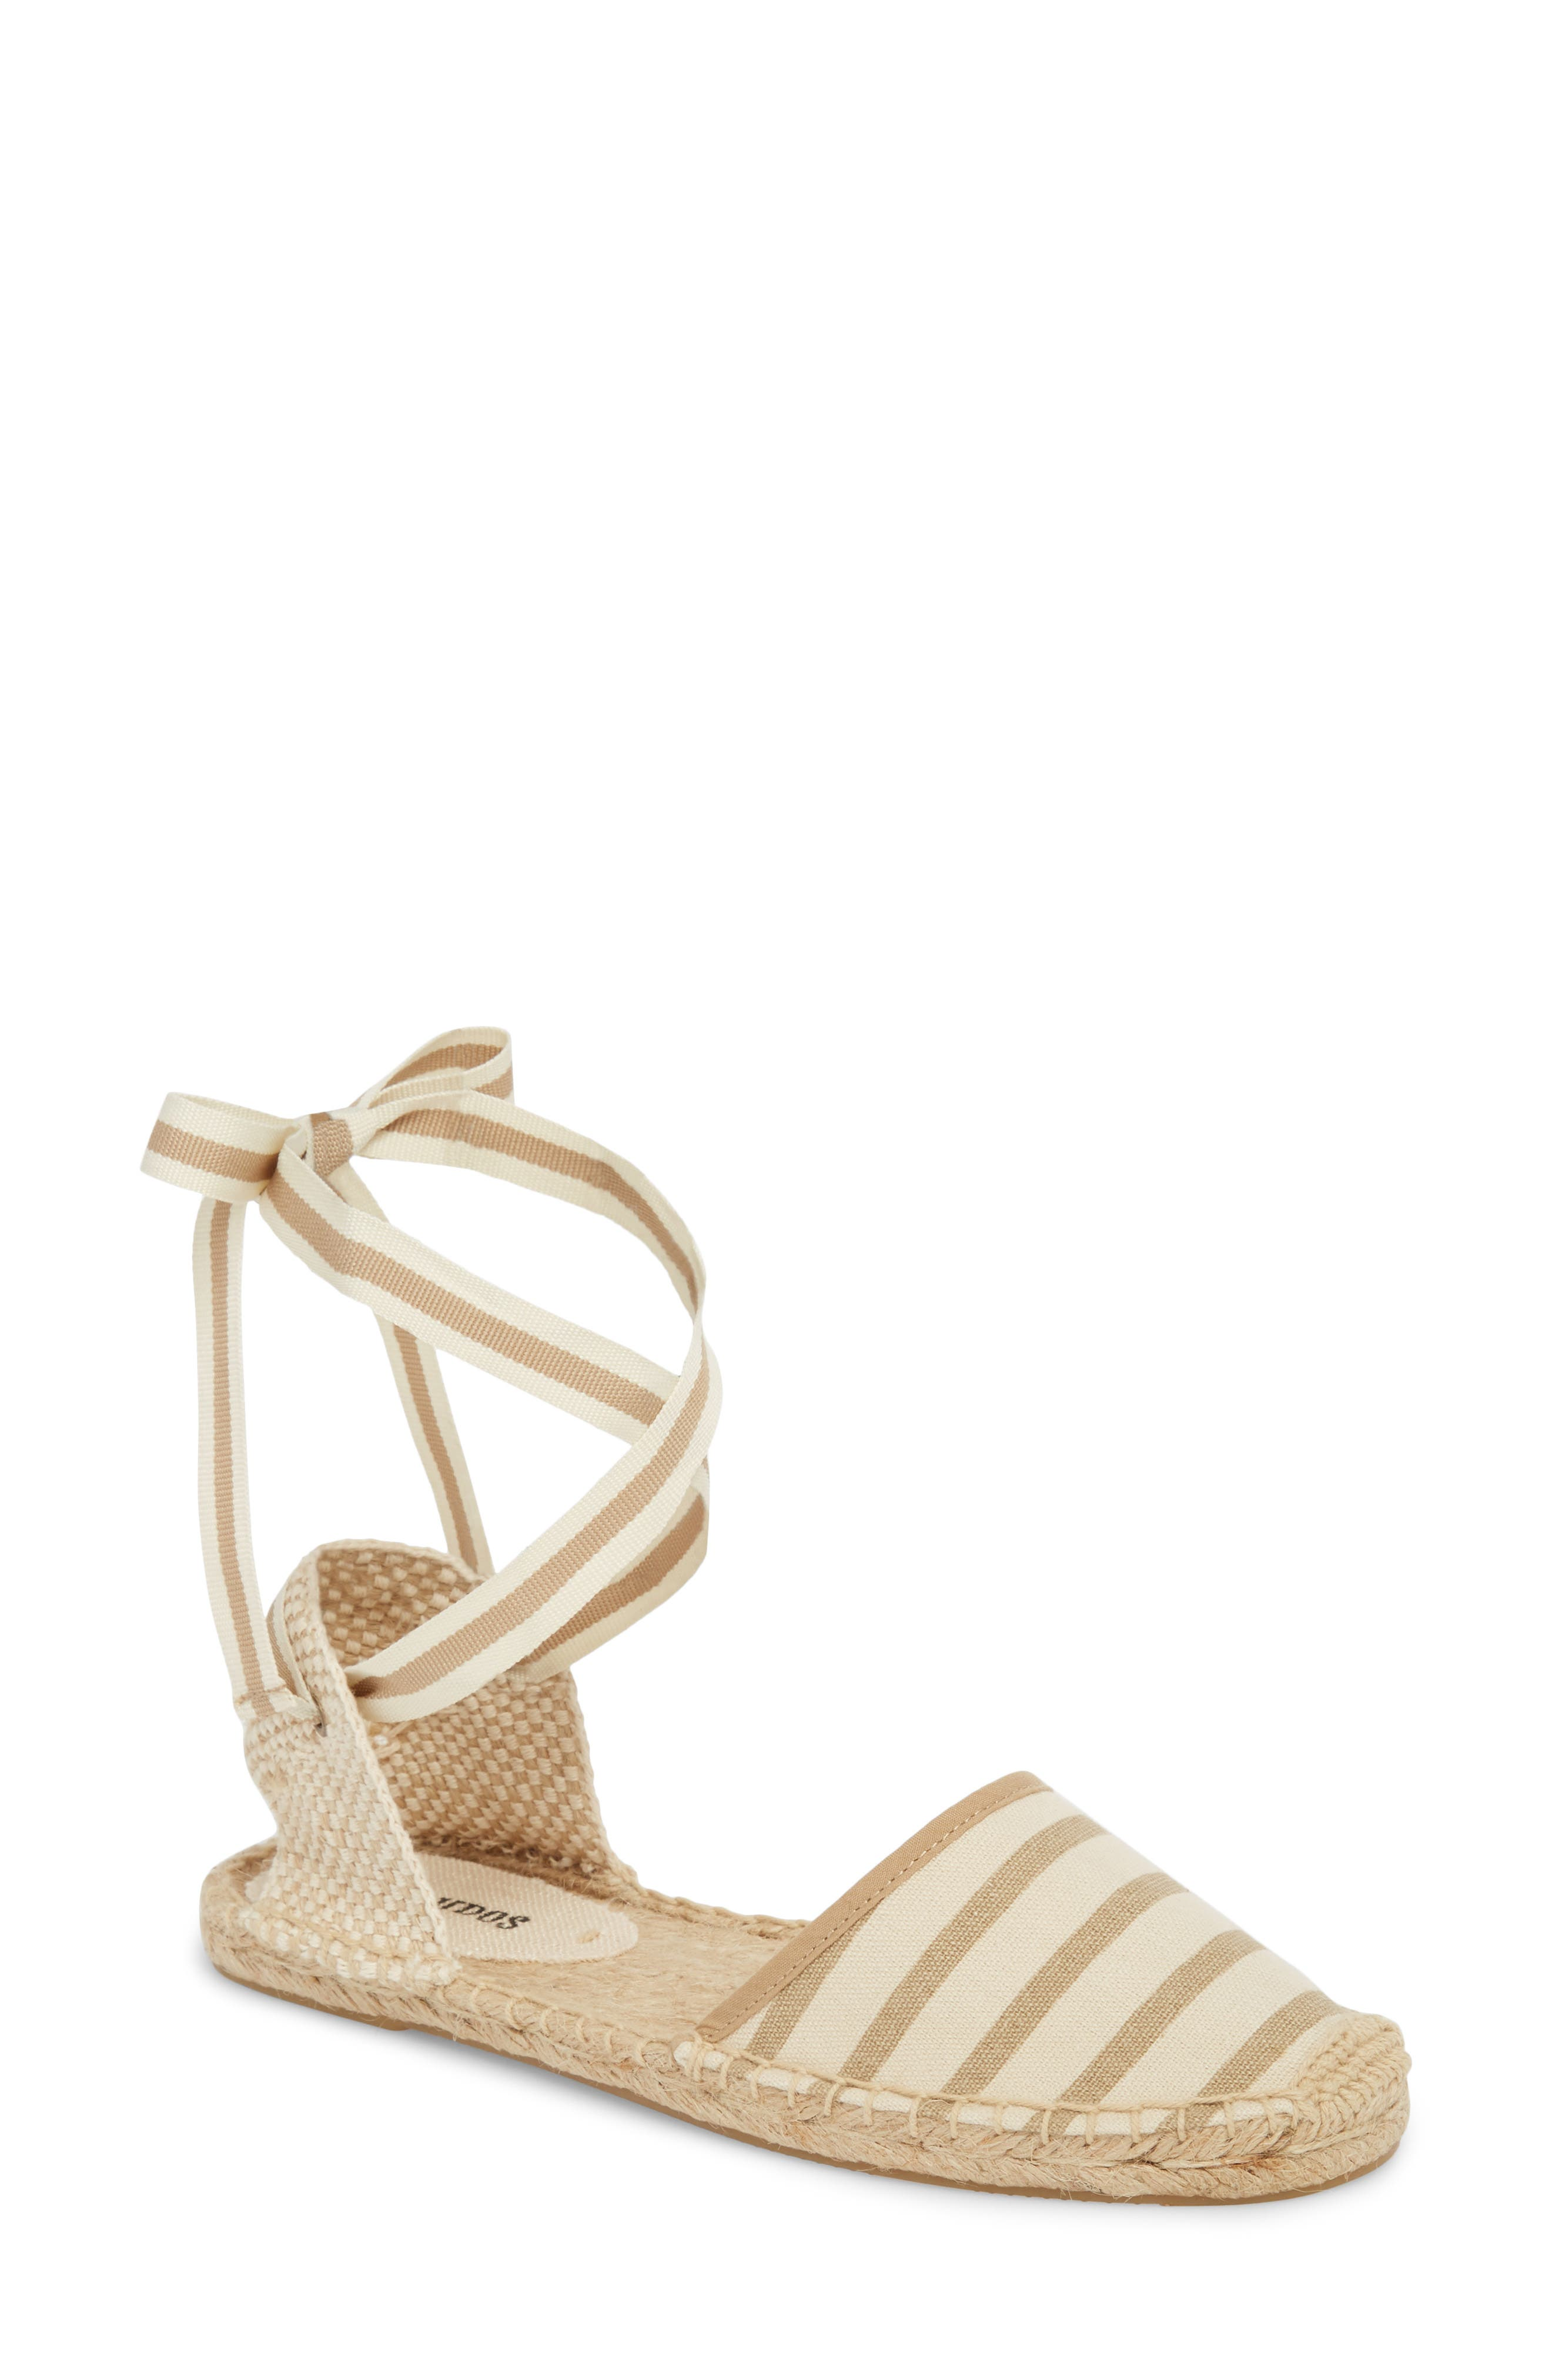 Soludos Lace-Up Espadrille Sandal (Women)